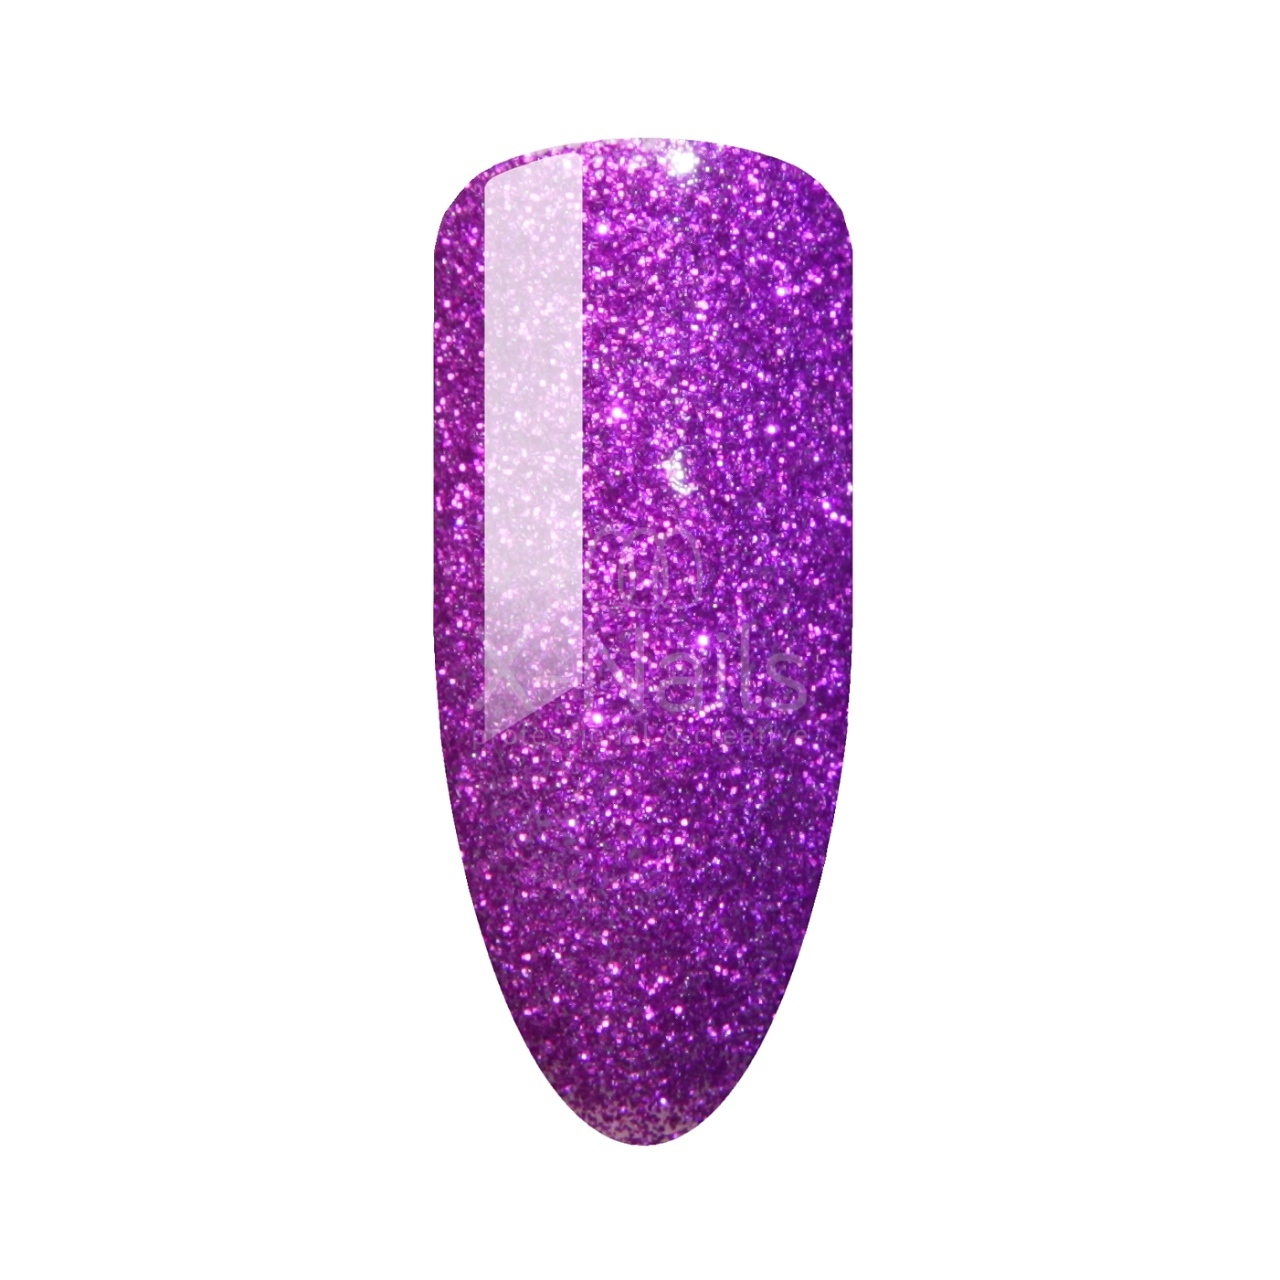 X-NAILS gel lak Amazing Line, 5 ml - IMPERIAL GLITTER